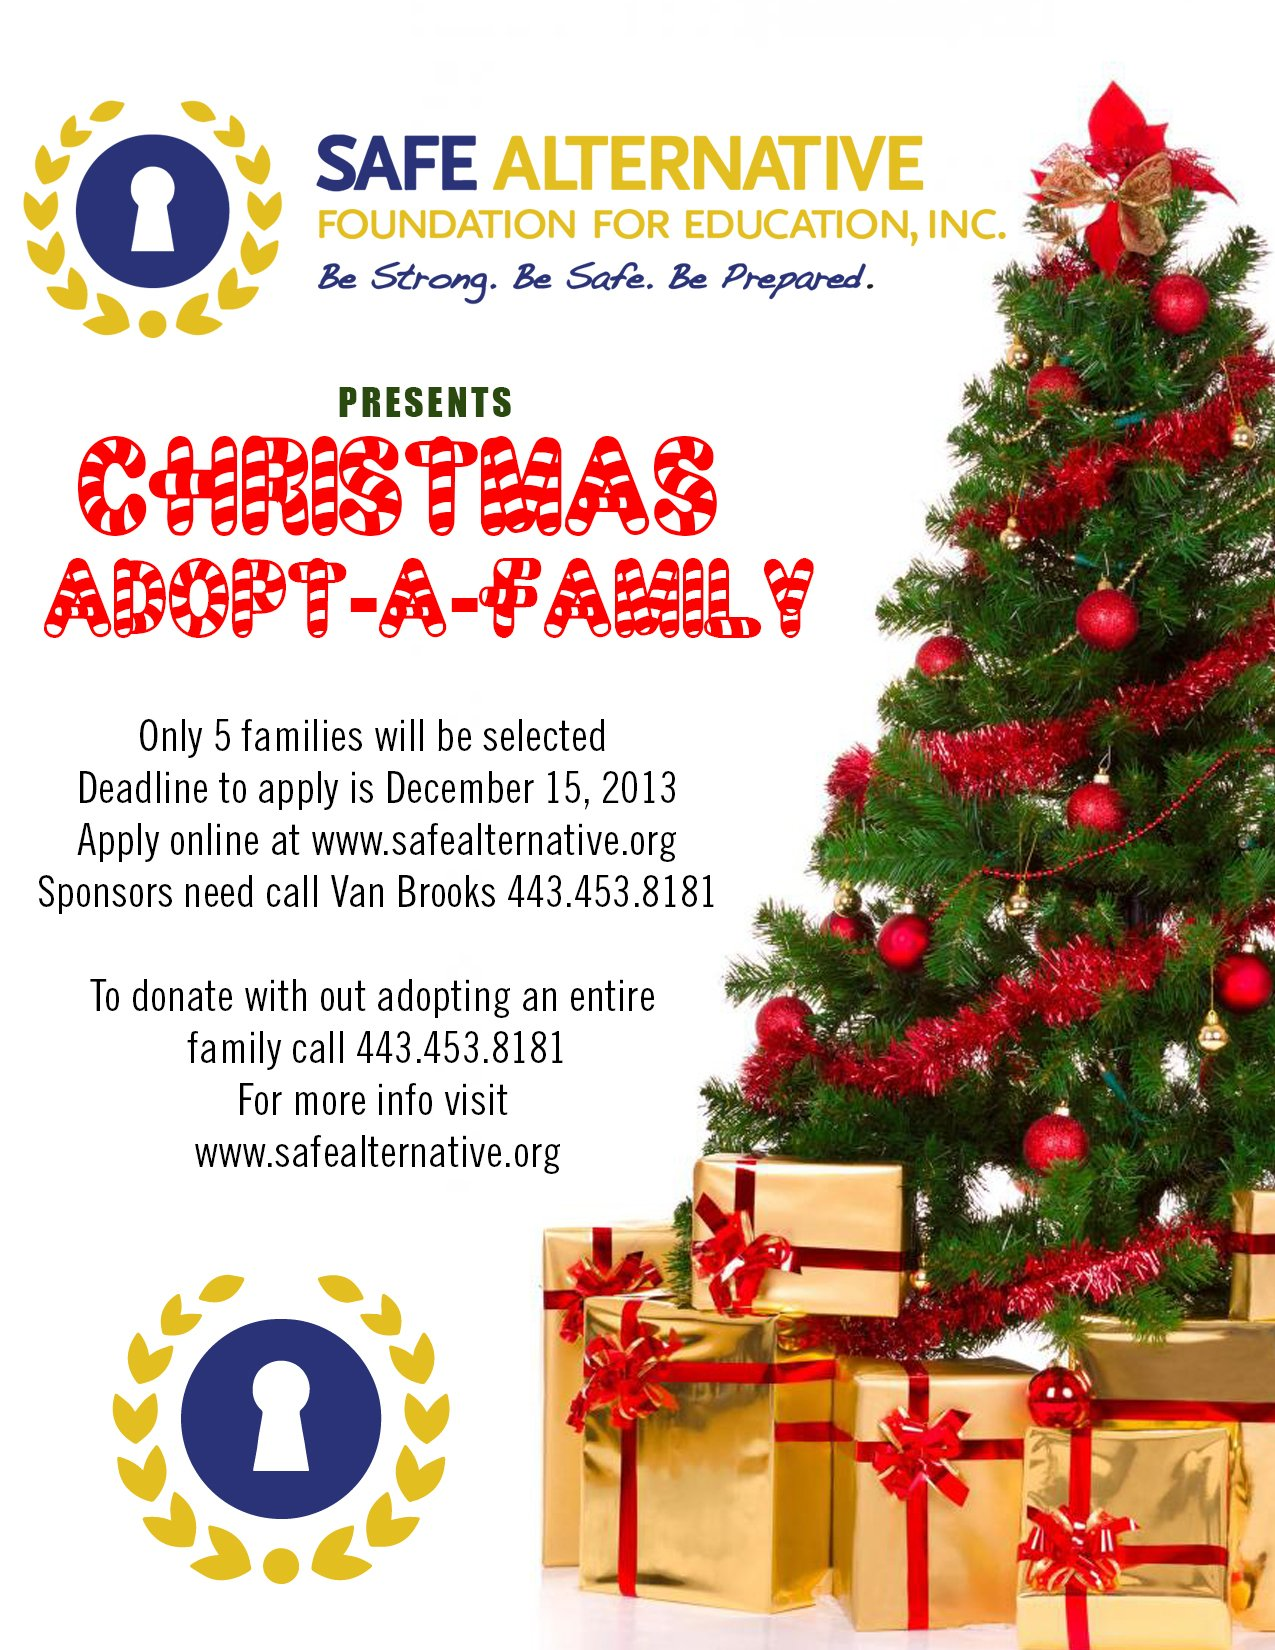 SAFE Alternative Presents Christmas Adopt-A-Family